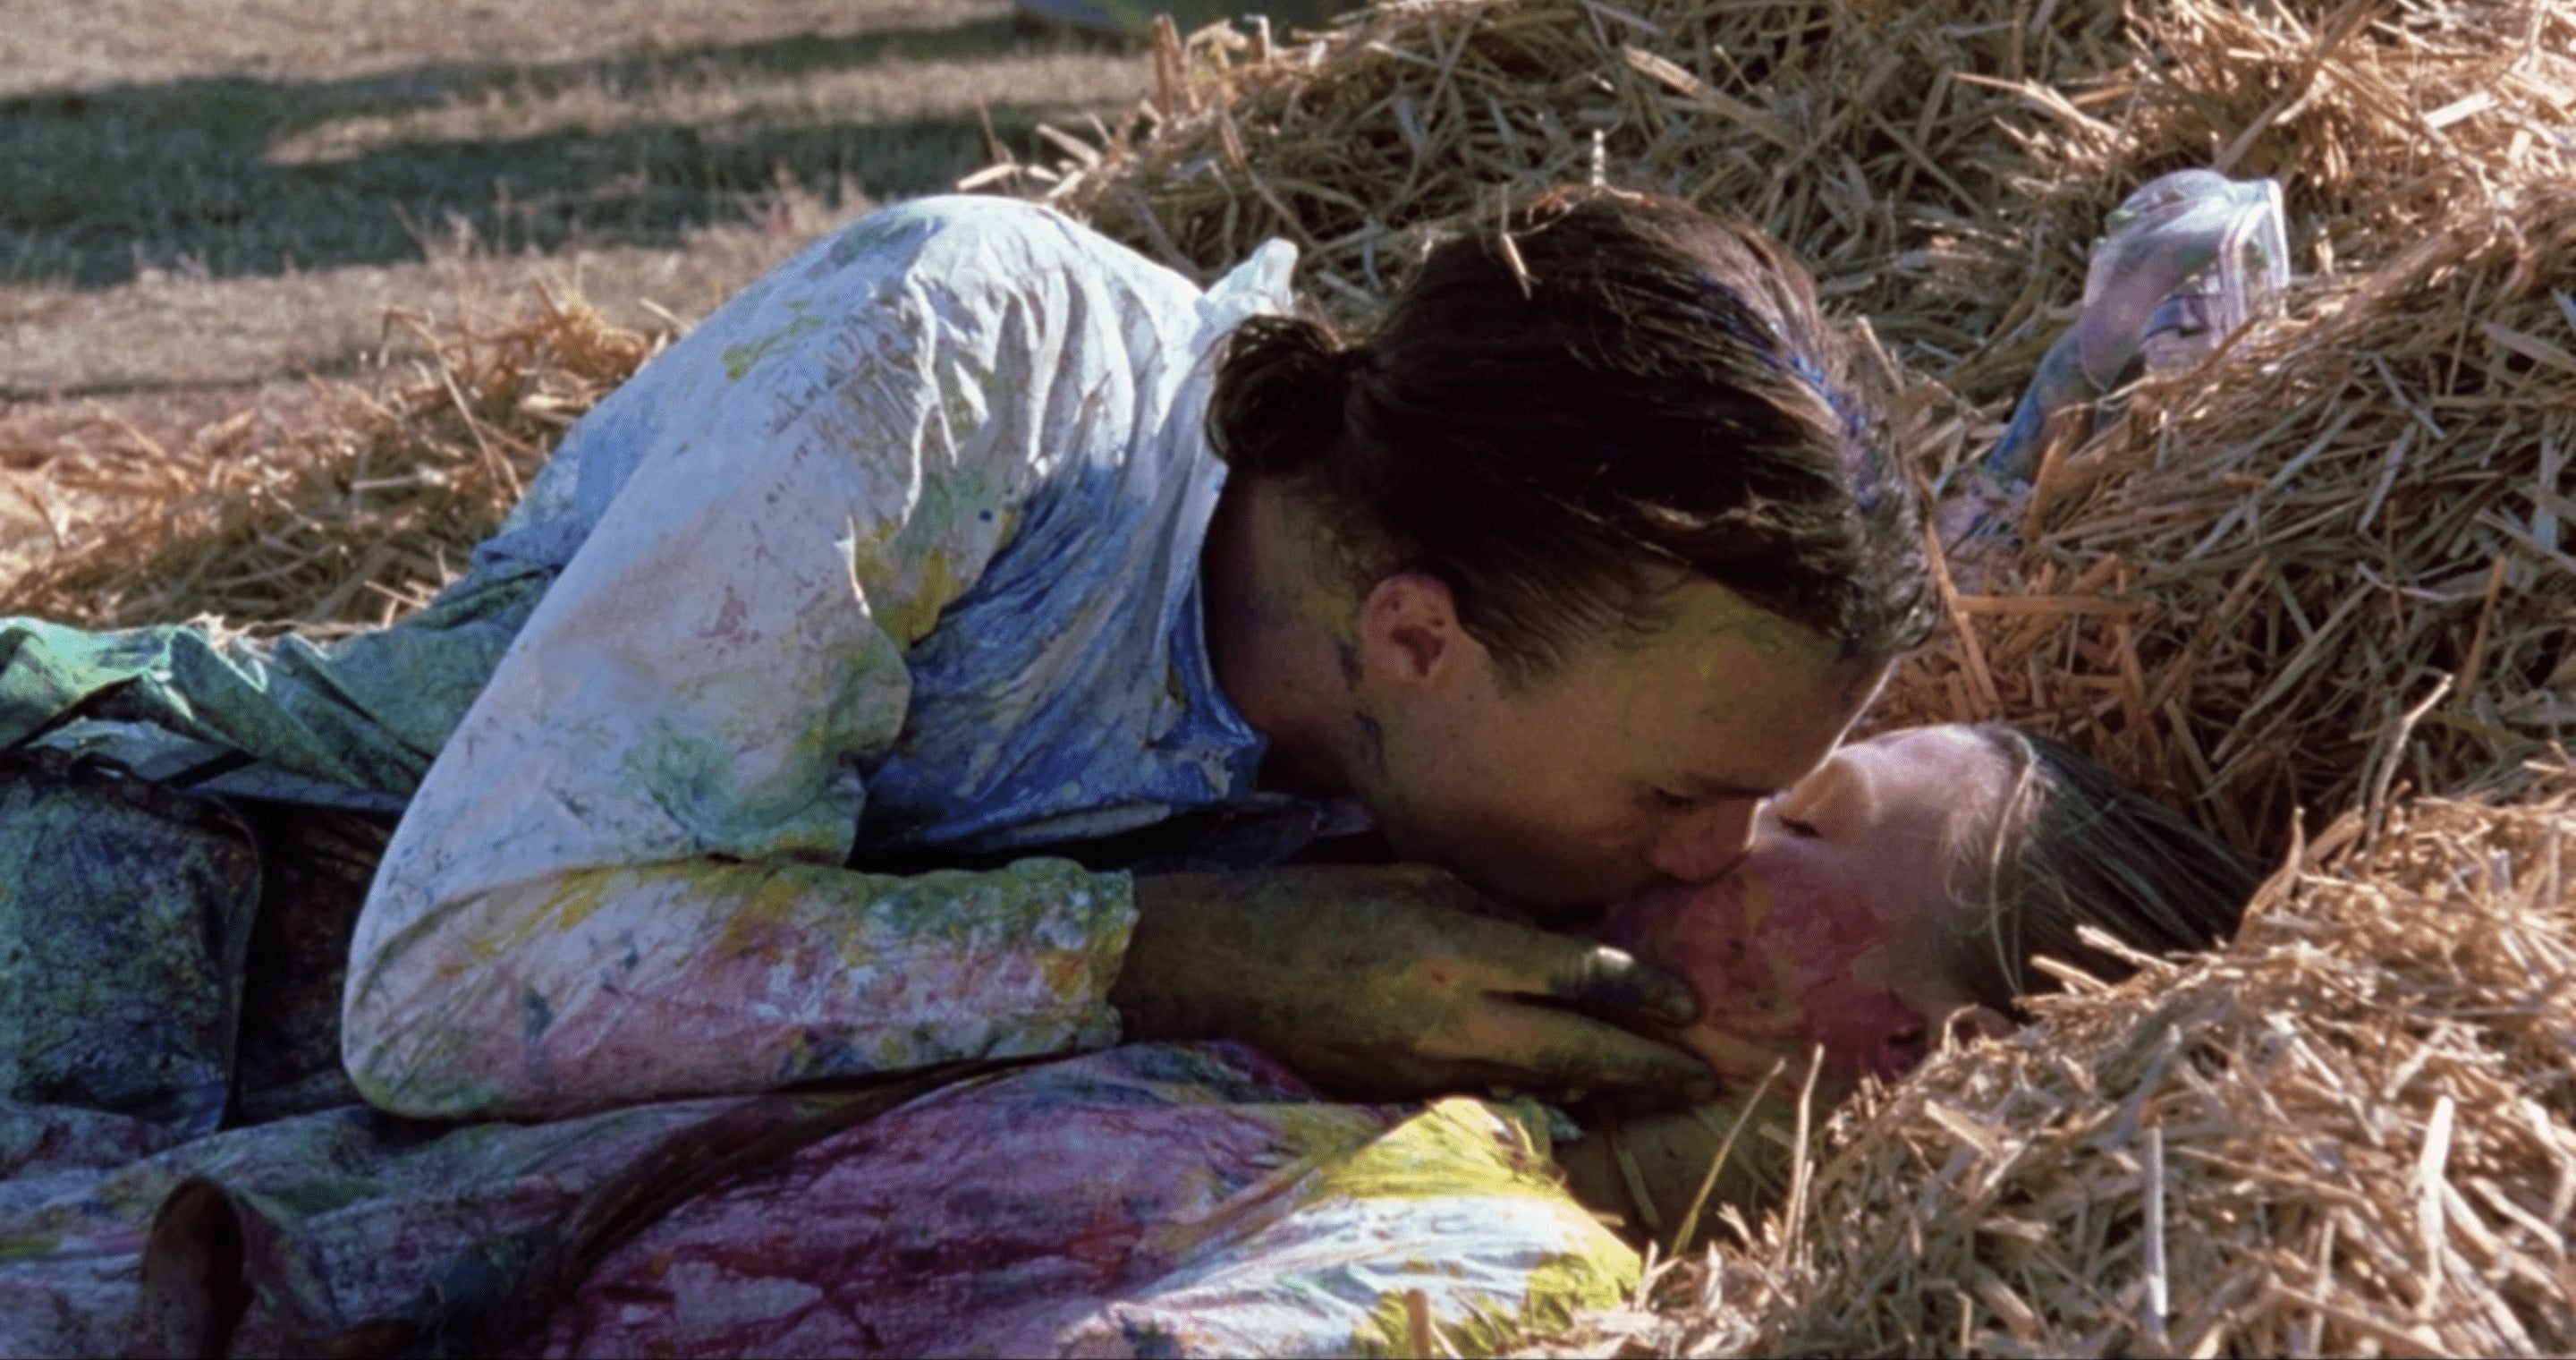 Kat and Patrick kiss in the hay after a game of paintball